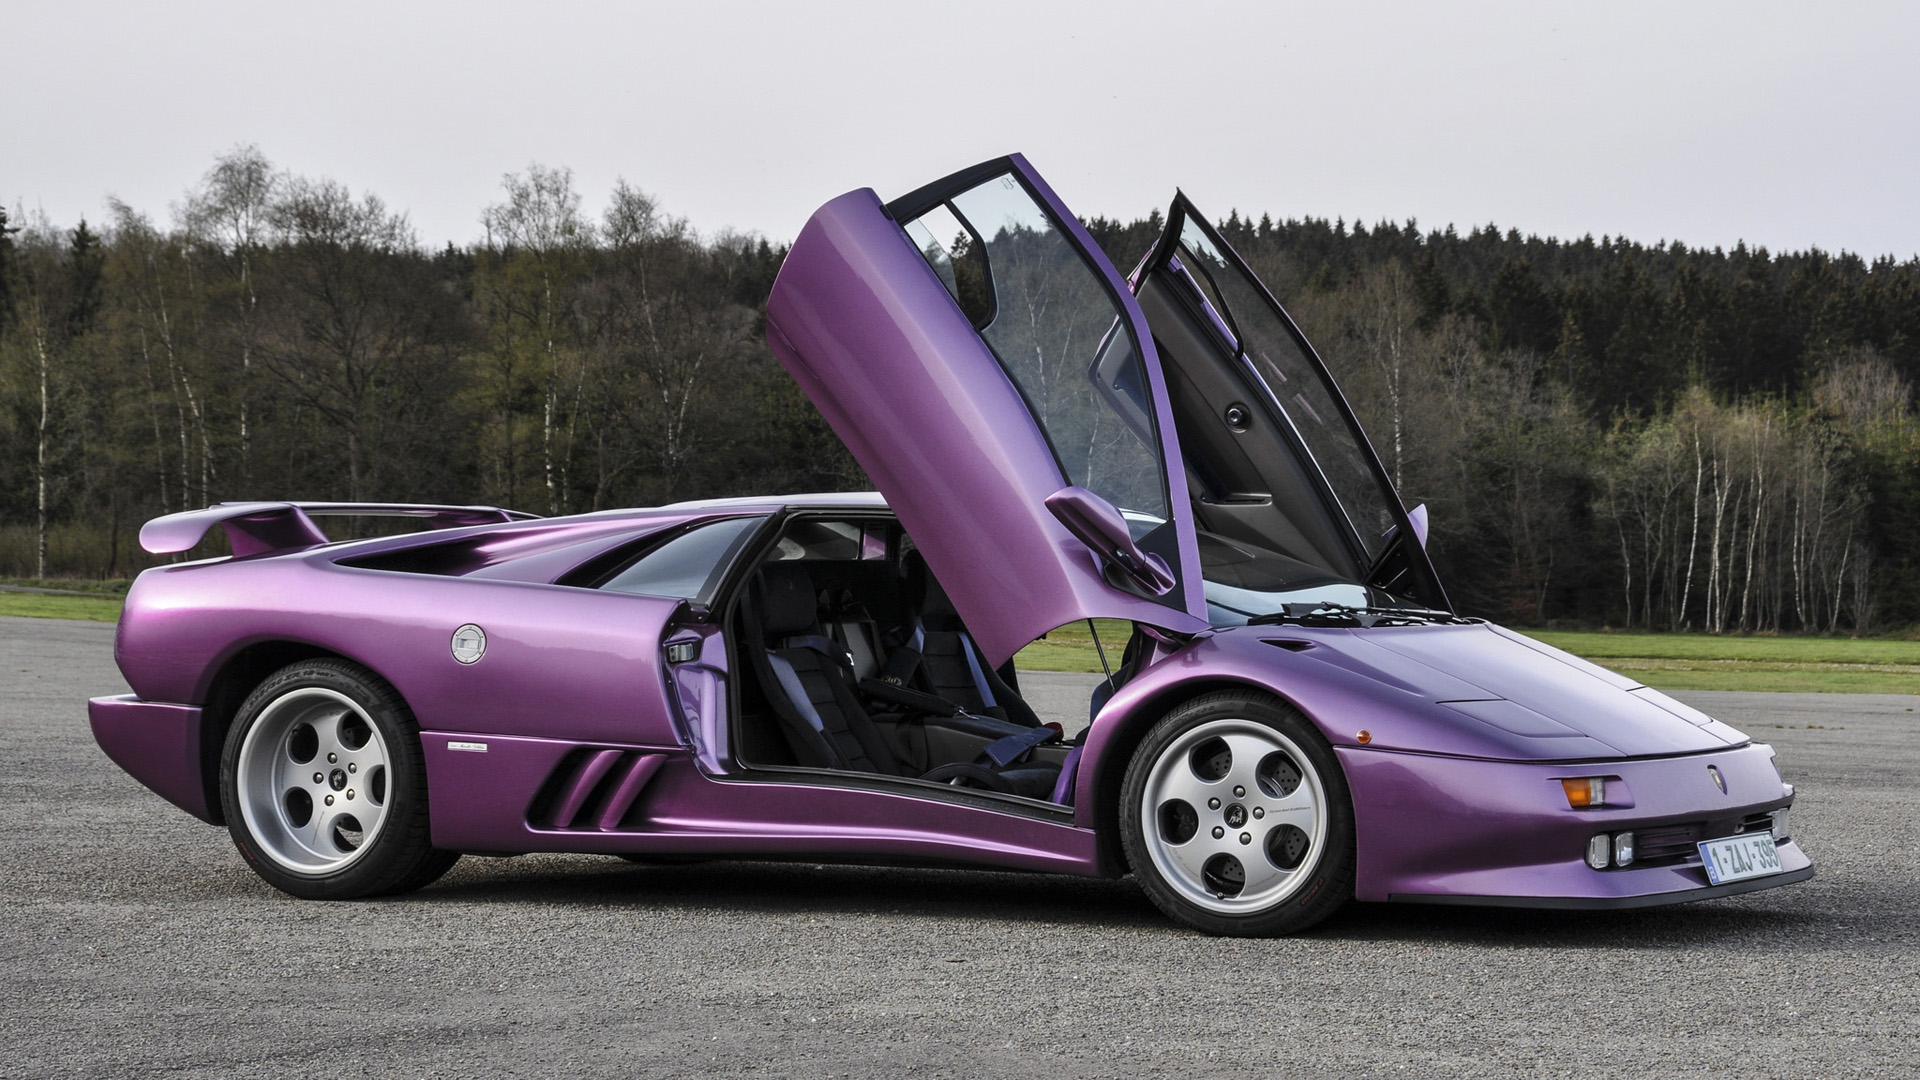 Lamborghini had always been about extravagance and style, racing was never a priority.